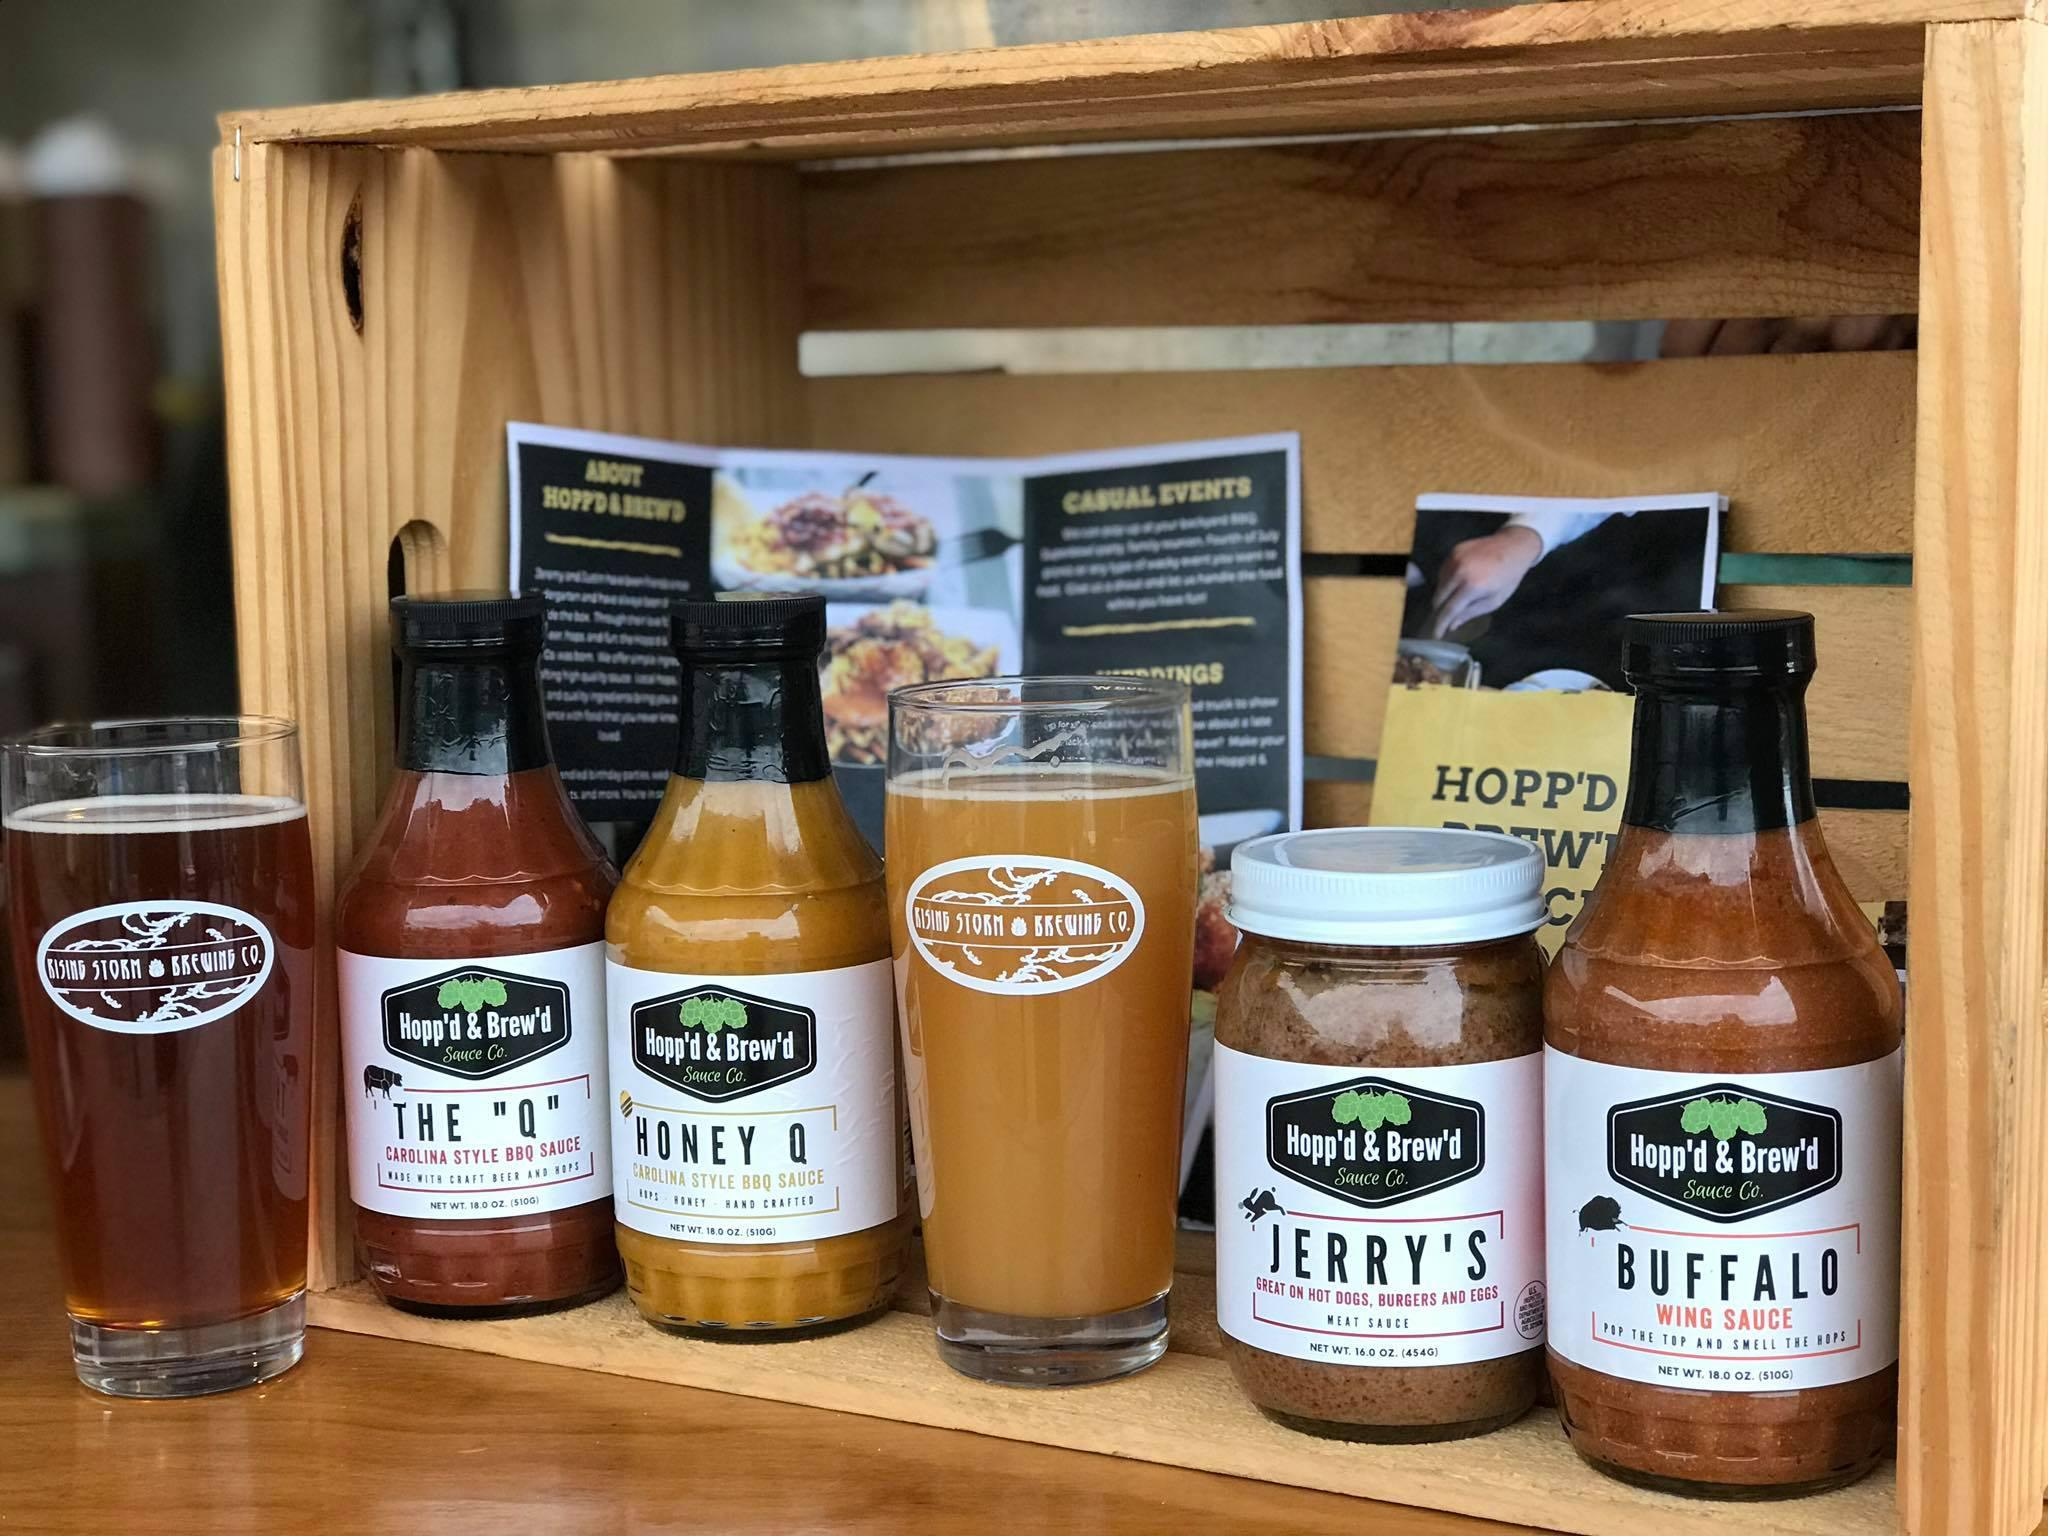 Hopp'd and Brew'd sauces at Rising Storm Brewing Company in Livonia.